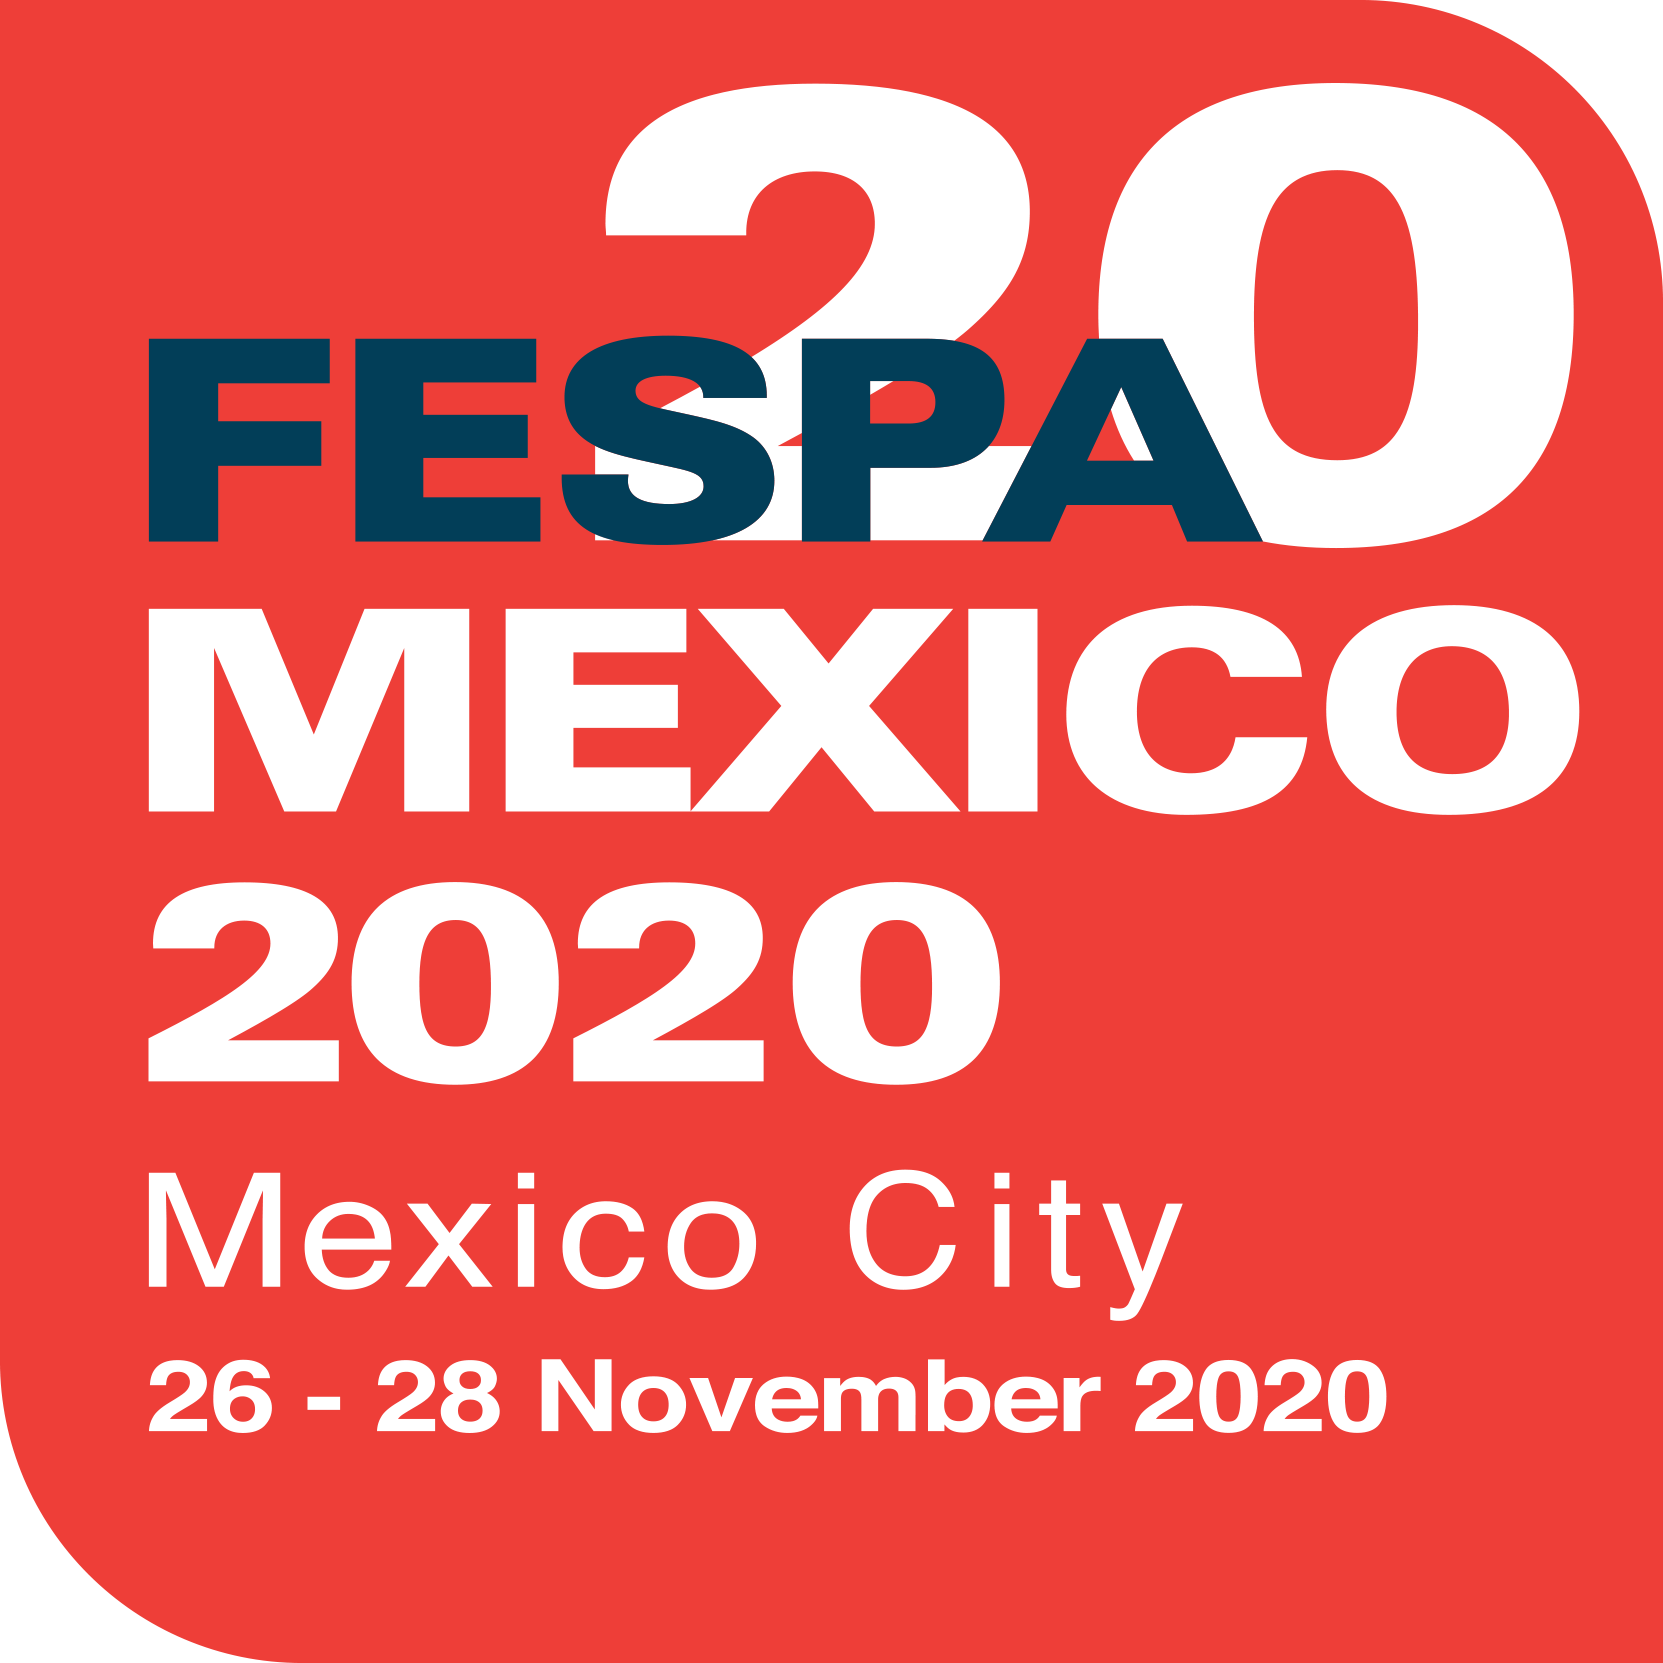 FESPA MEXICO 2020 POSTPONED TO NOVEMBER